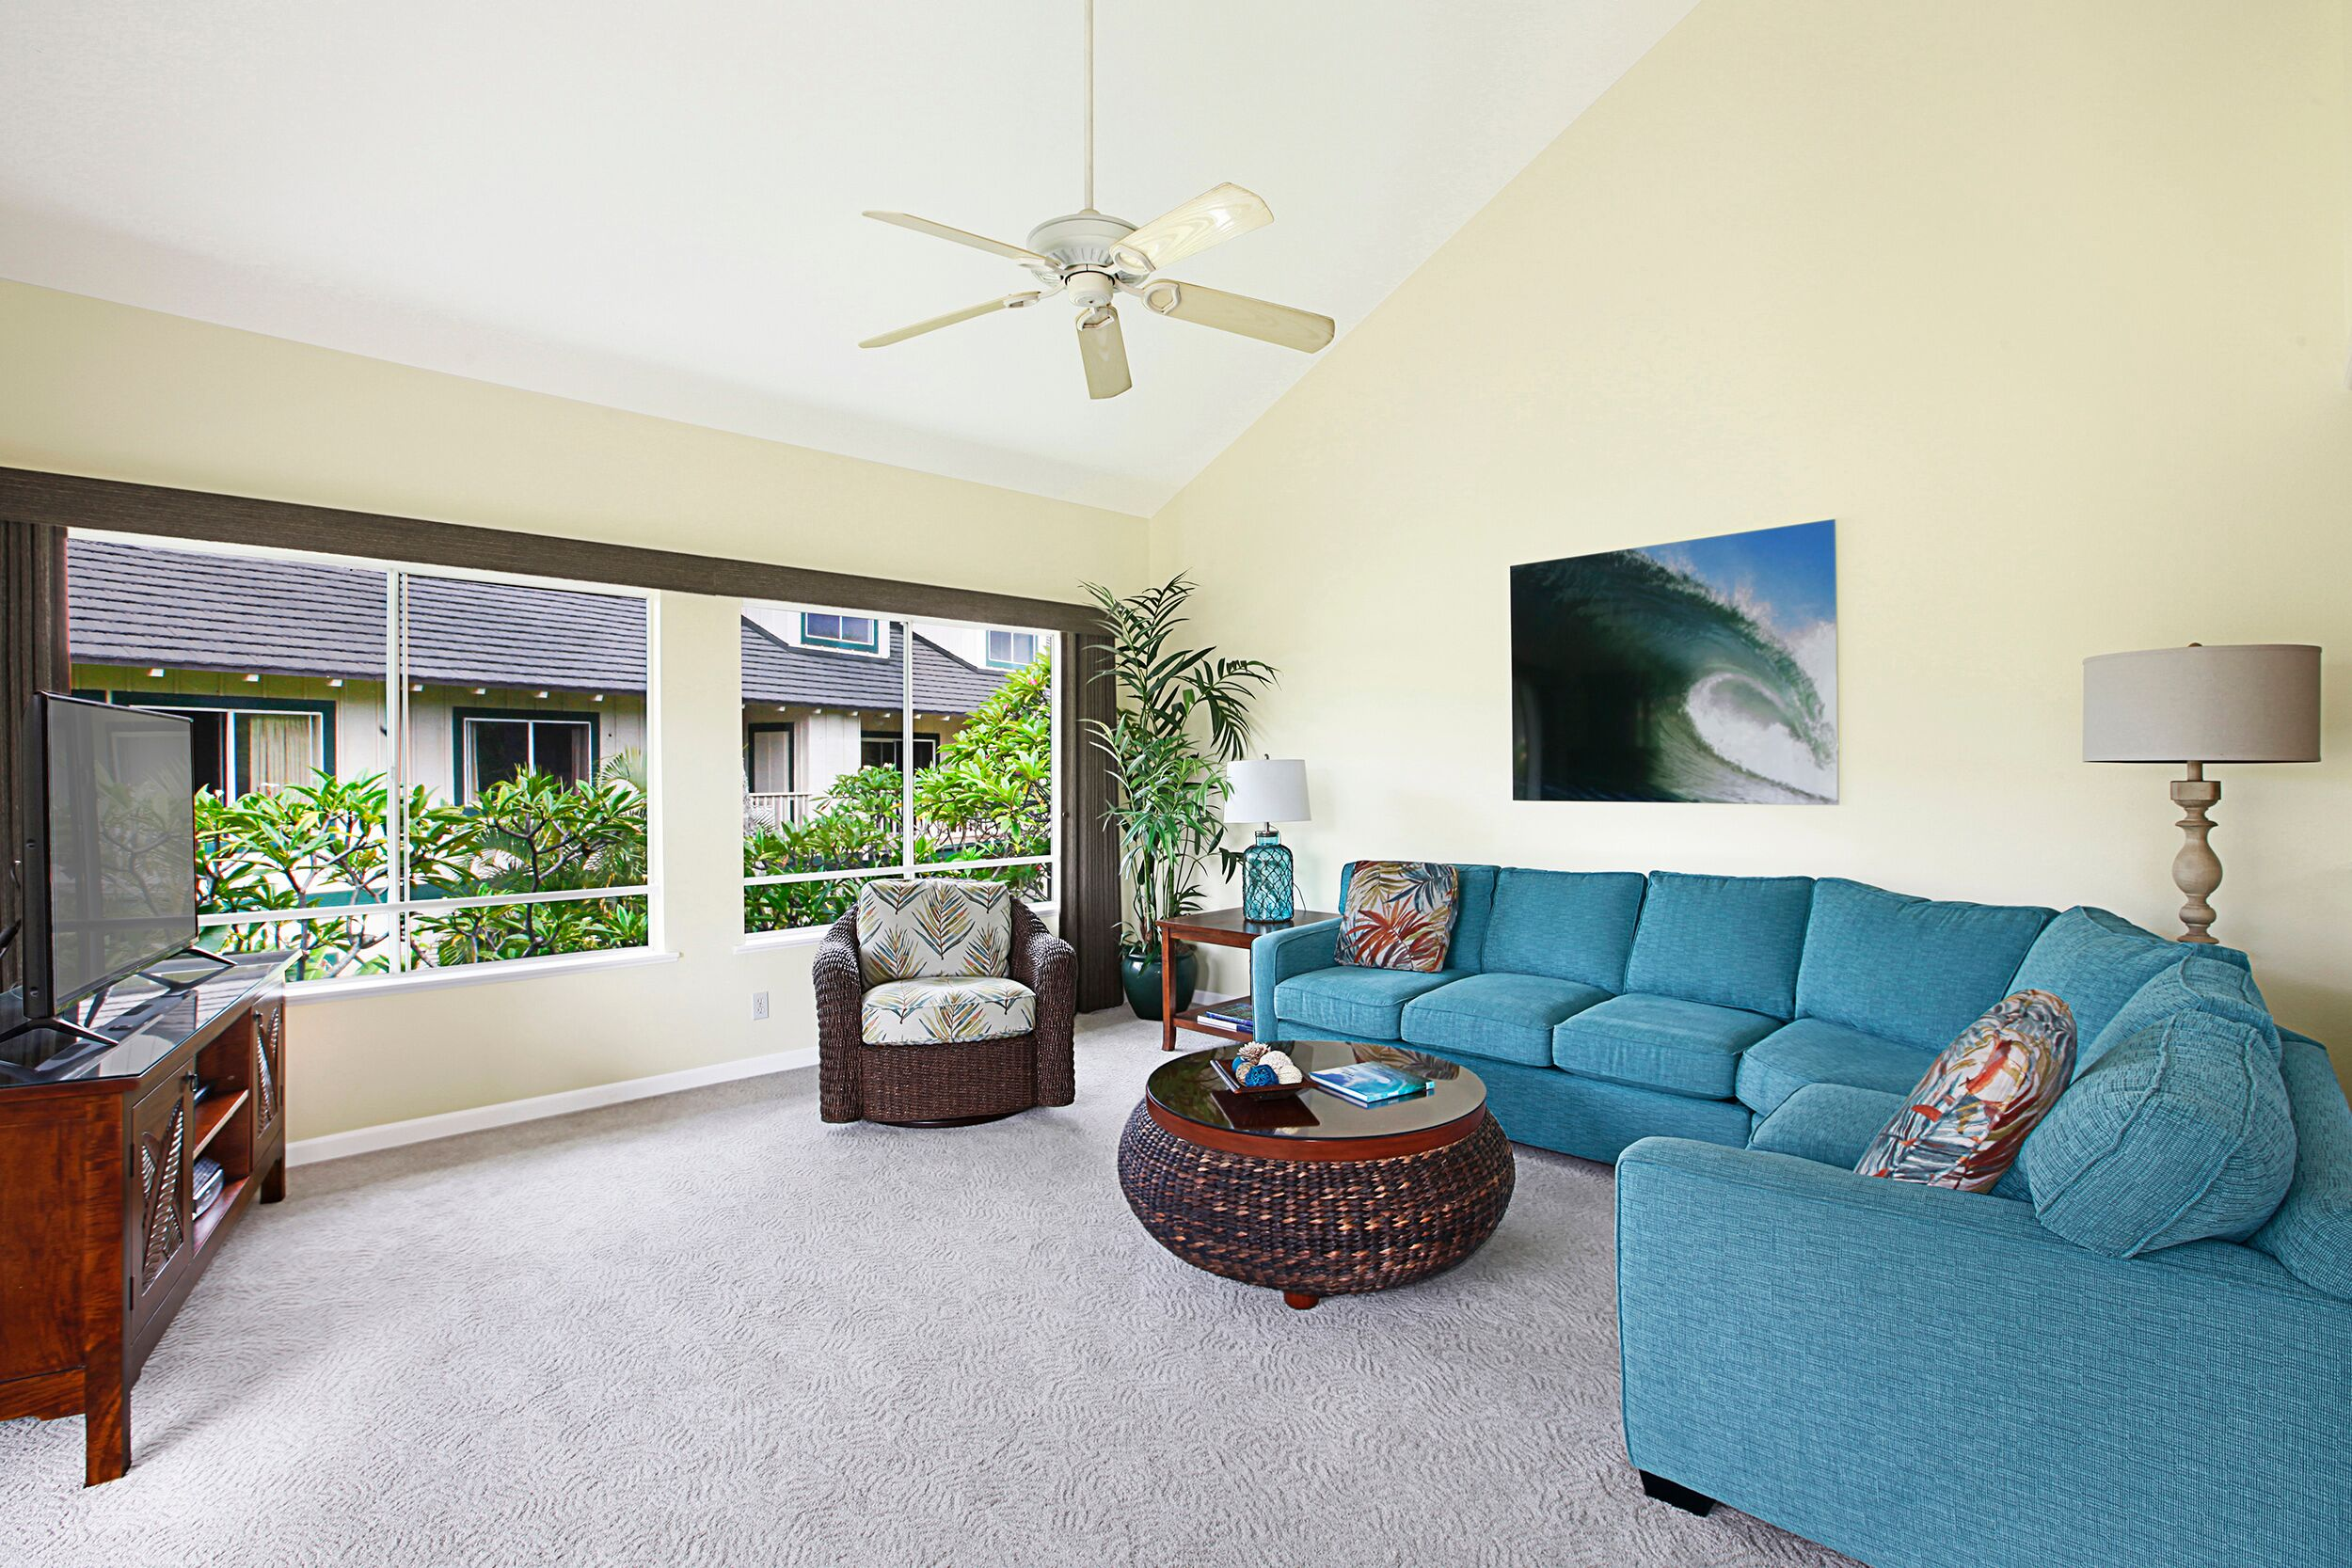 Property Image 1 - Spacious Kauai Retreat Well Suited for Fun Family Getaways